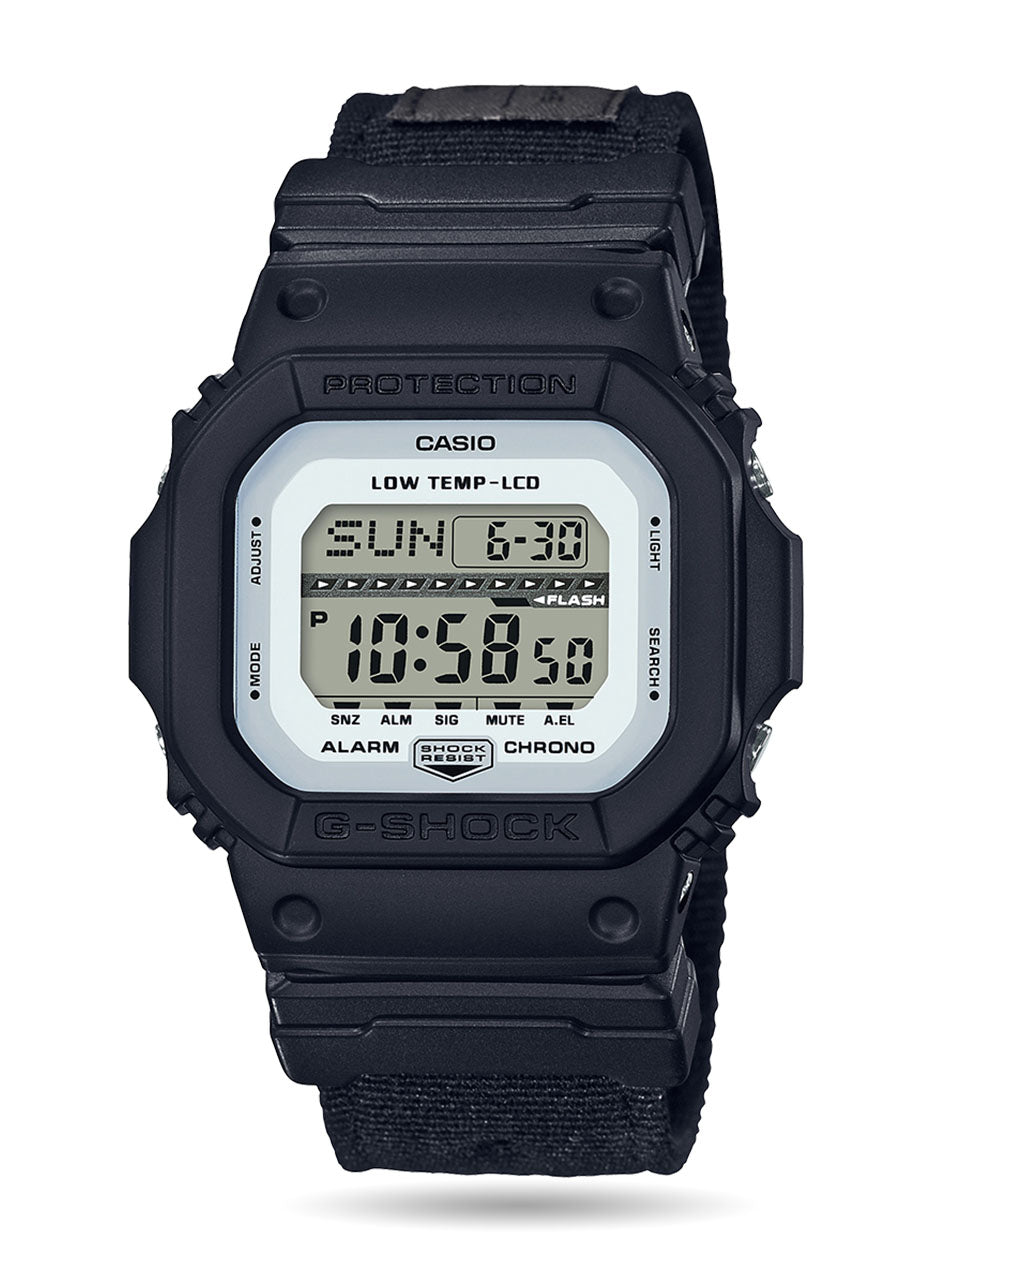 G Shock Digital Watch Gls5600 1 Black Brandswalk